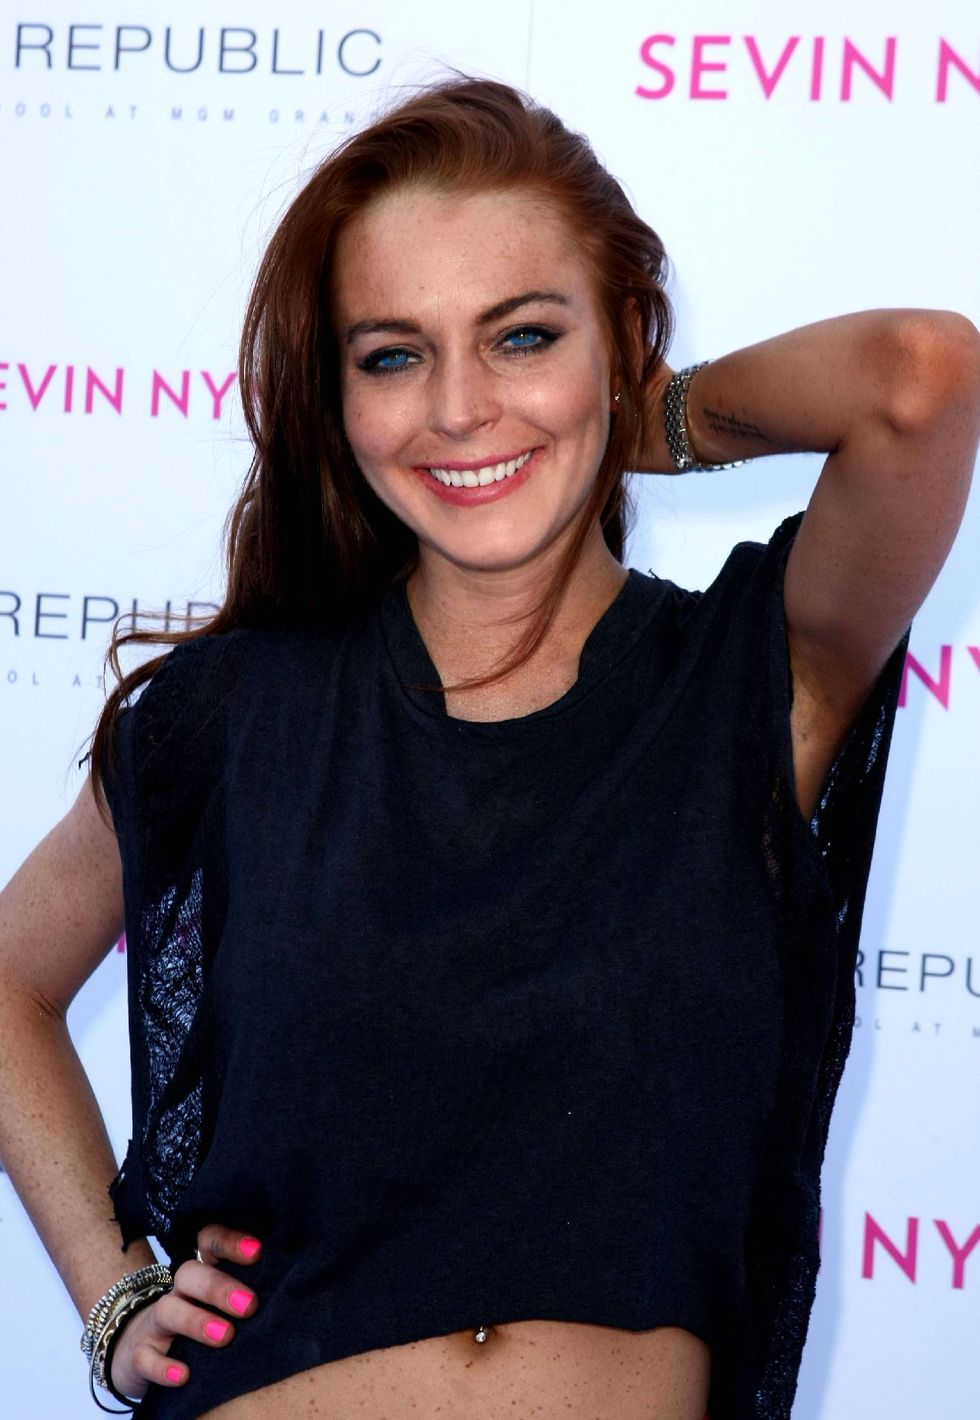 lindsay-lohan-23rd-birthday-party-at-wet-republic-in-las-vegas-01